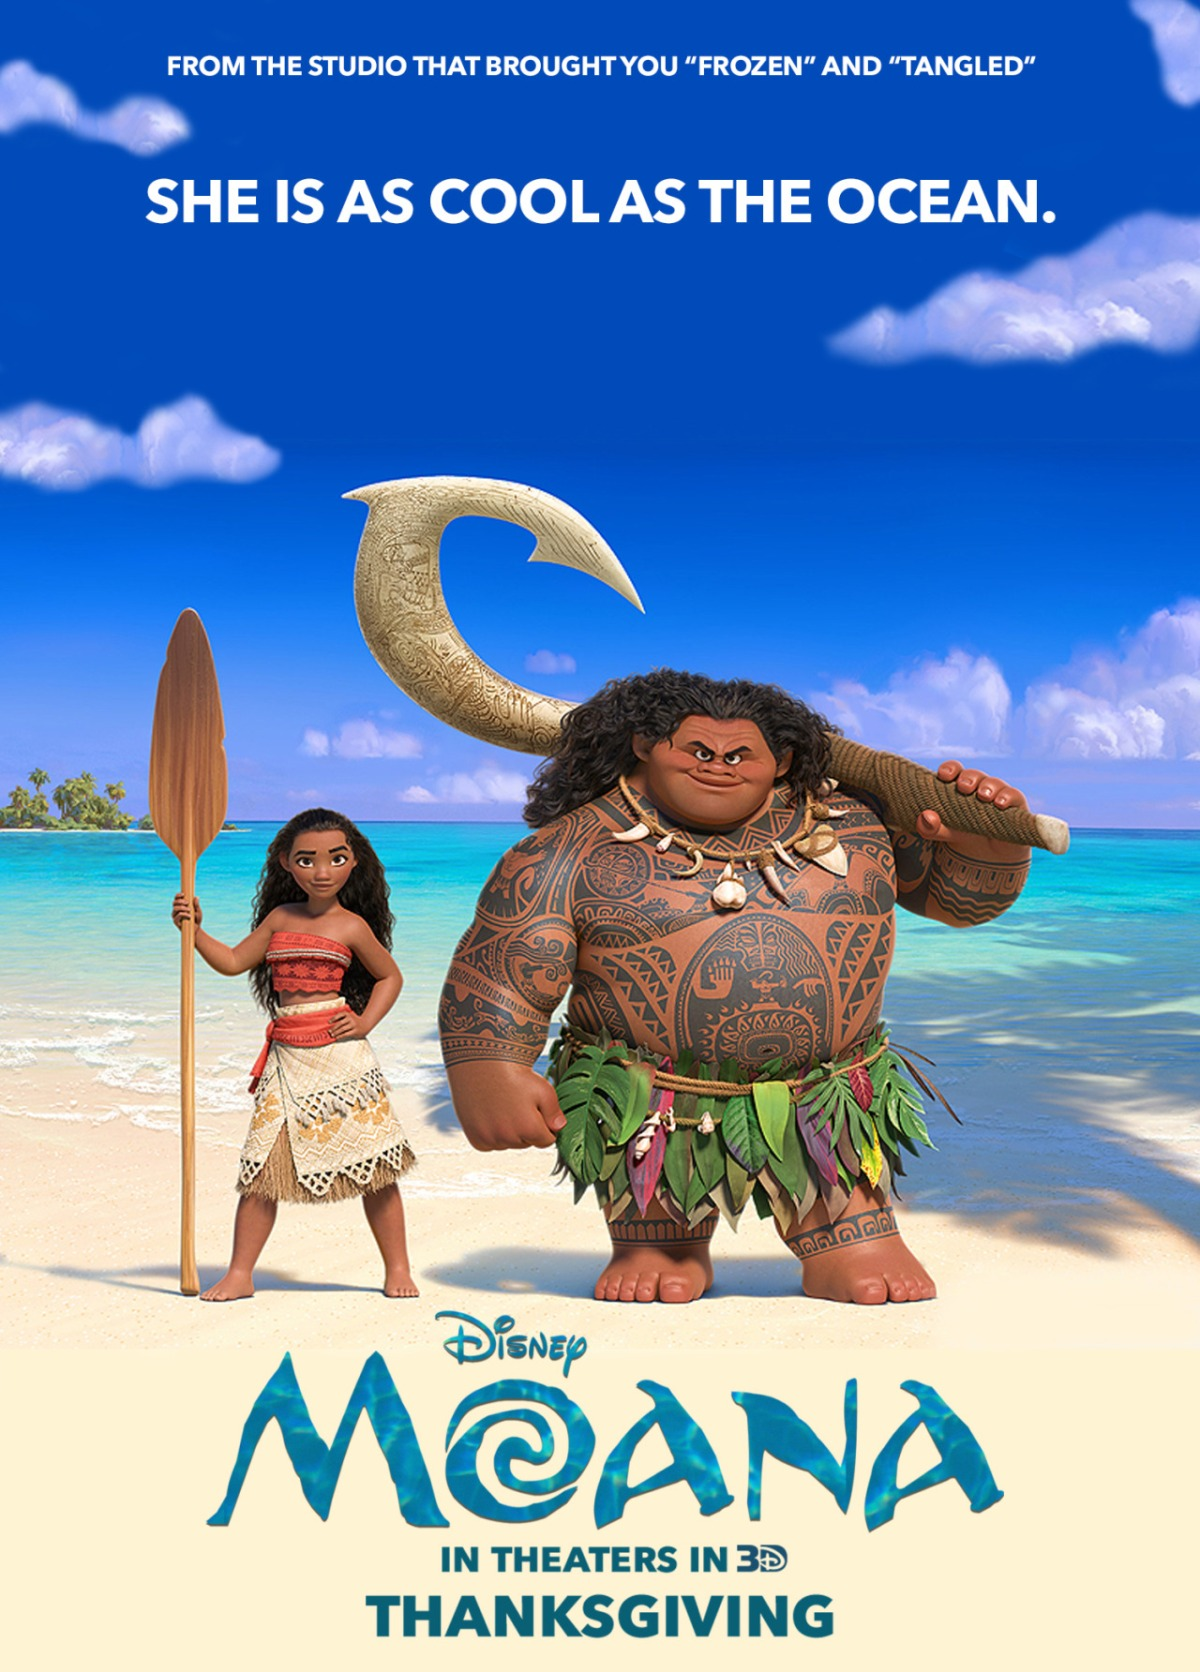 Moana (2016, dir. Ron Clements, John Musker, Don Hall, Chris Williams)